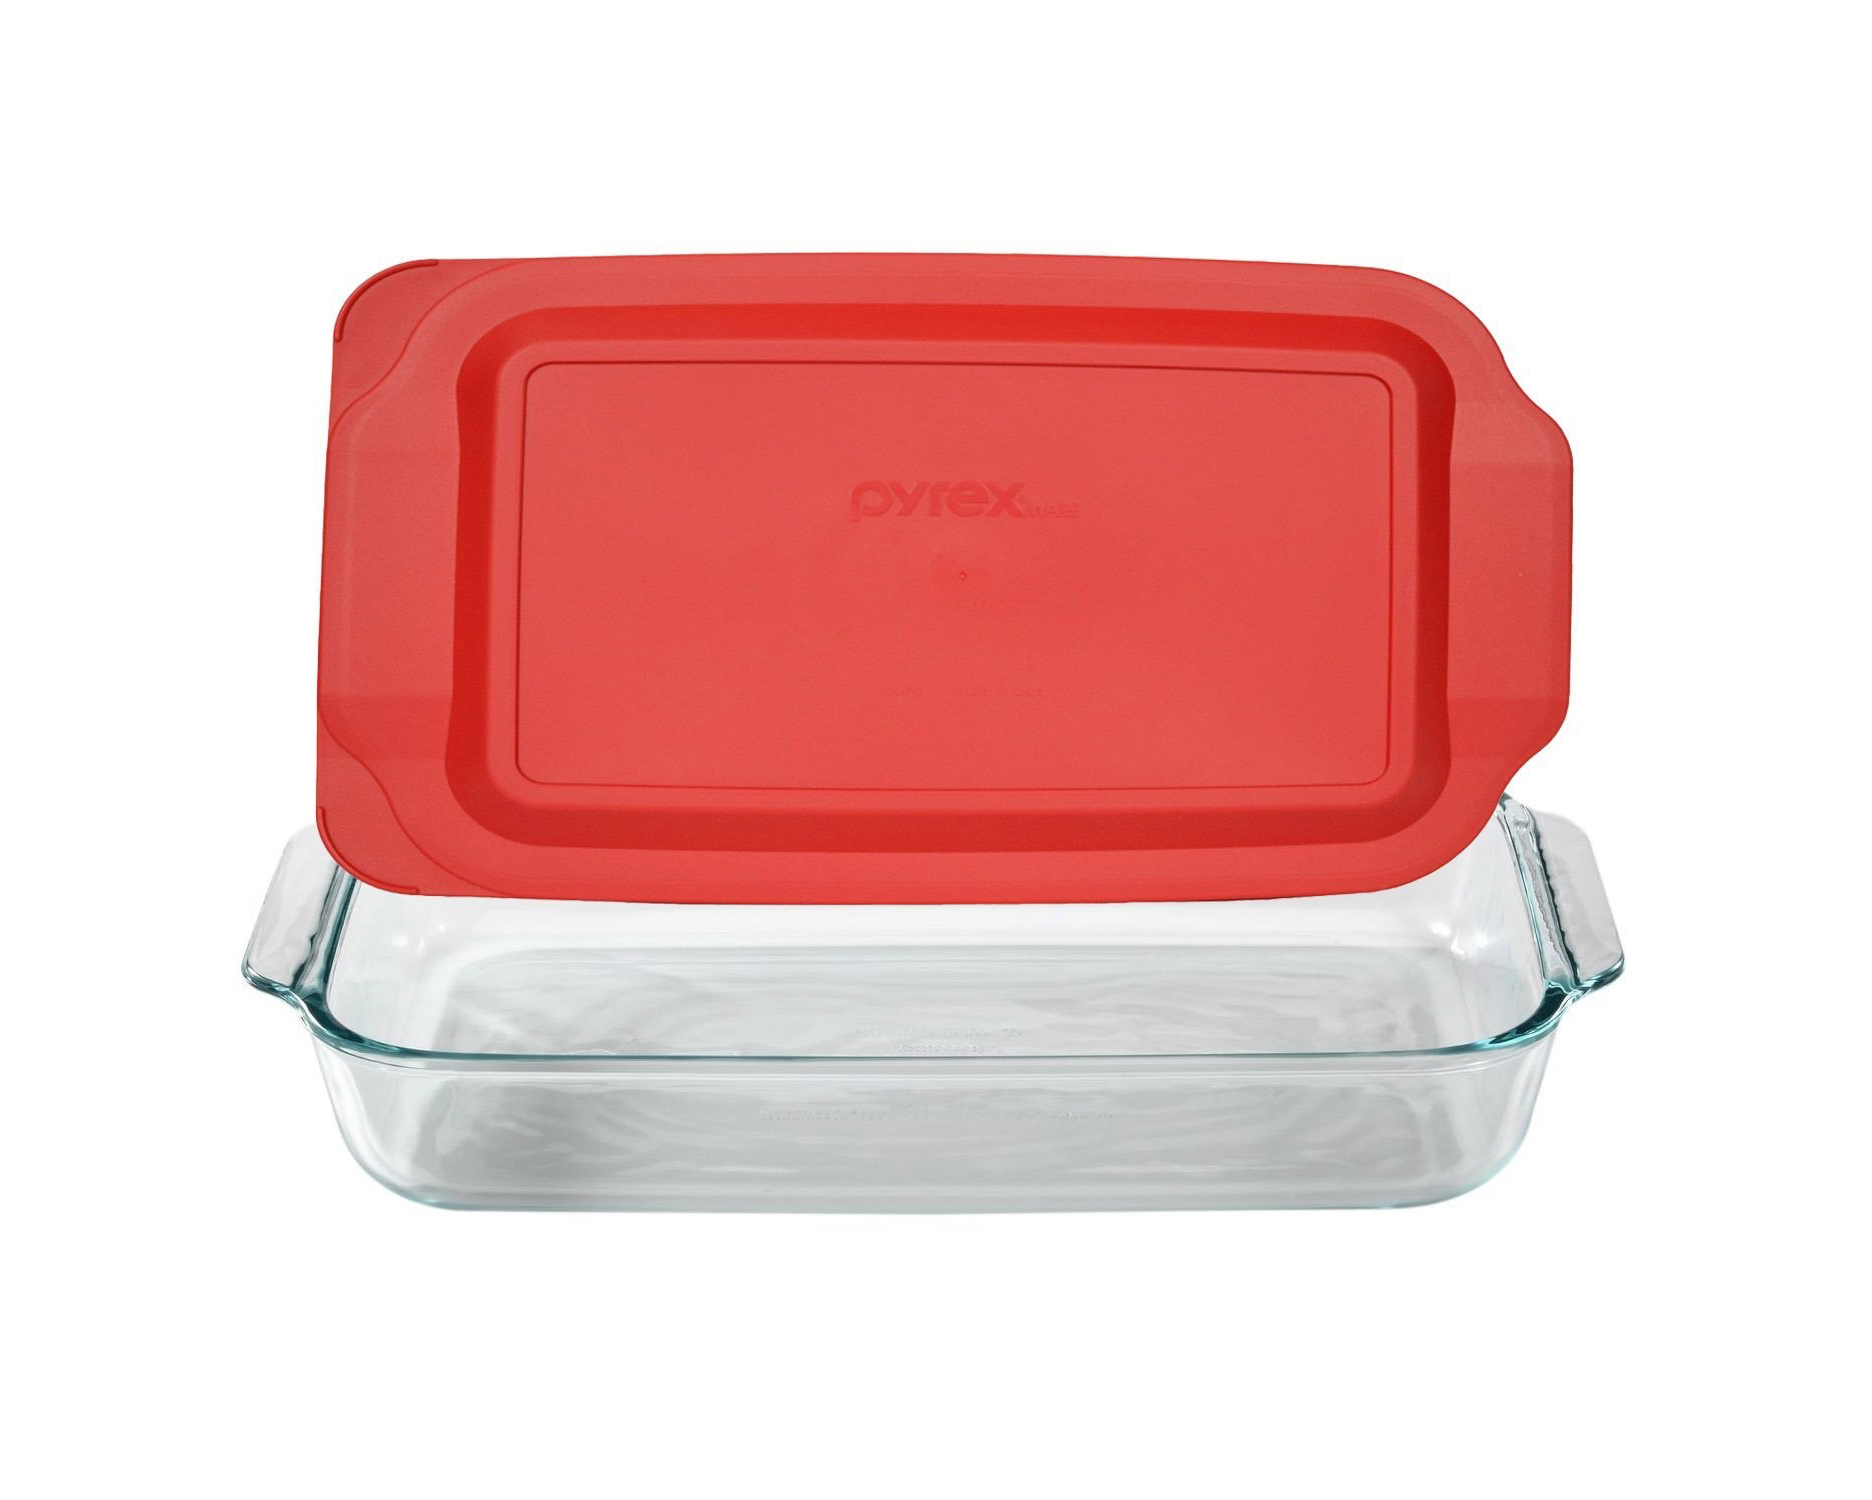 Can You Freeze Food In Glass Pyrex